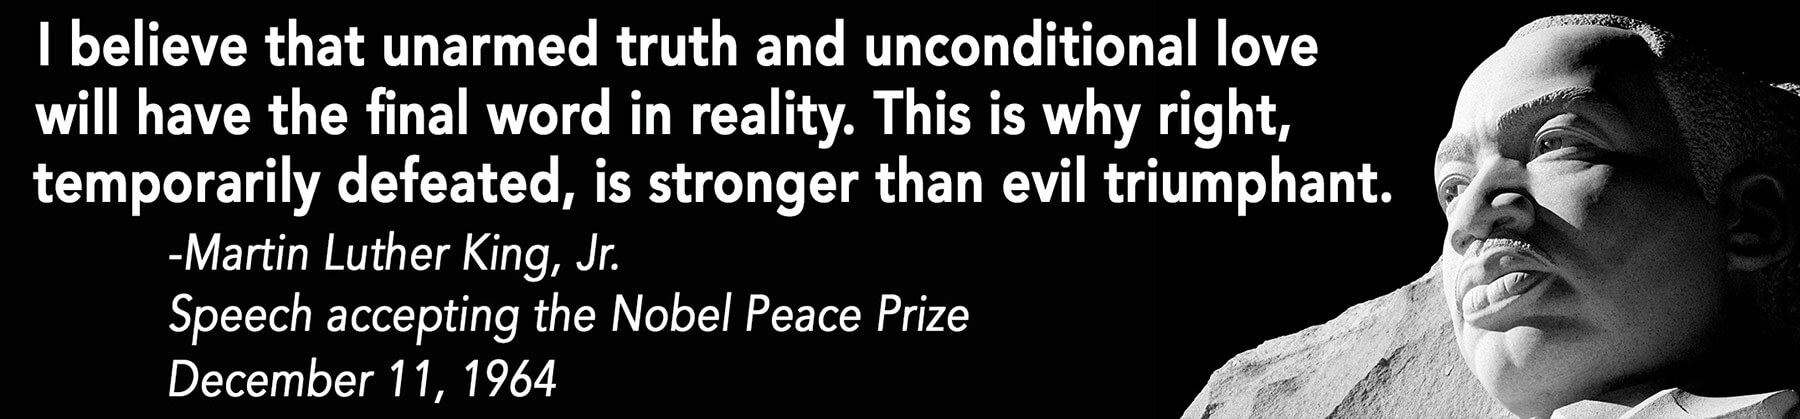 Martin Luther King, Jr. Speech accepting the Nobel Peace Prize